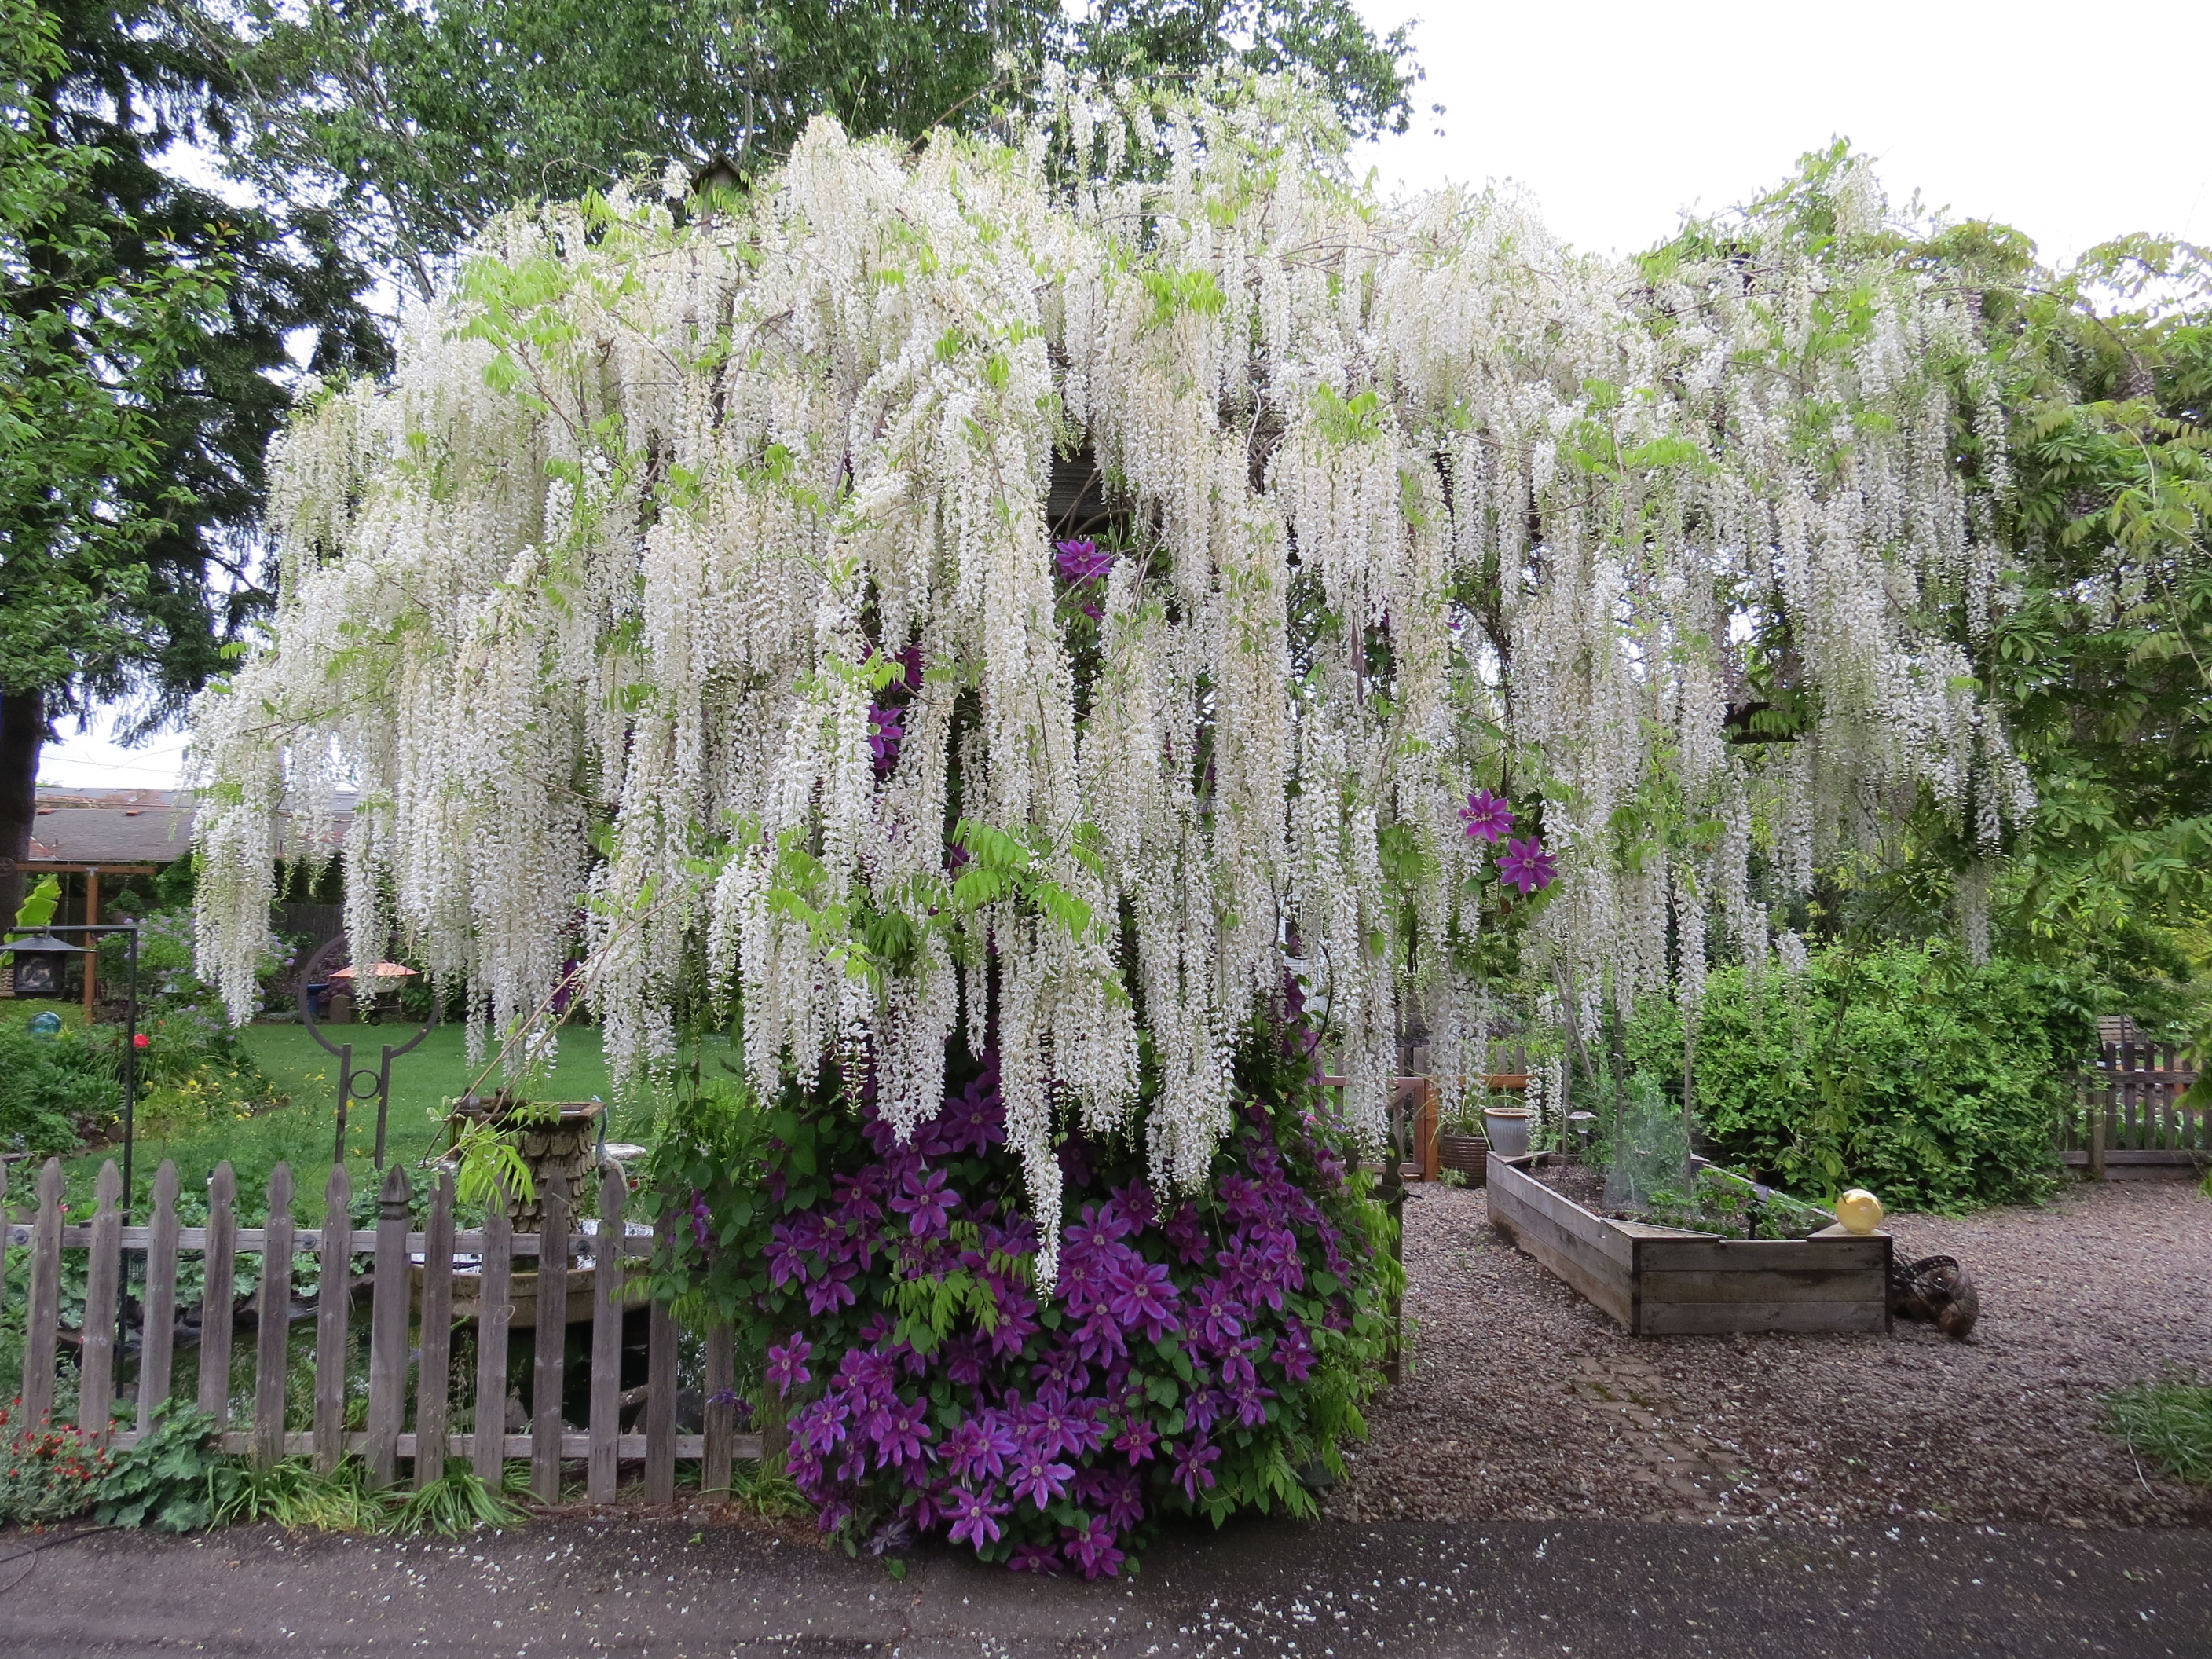 Wisteria care: Get out your clippers twice a year and go to town